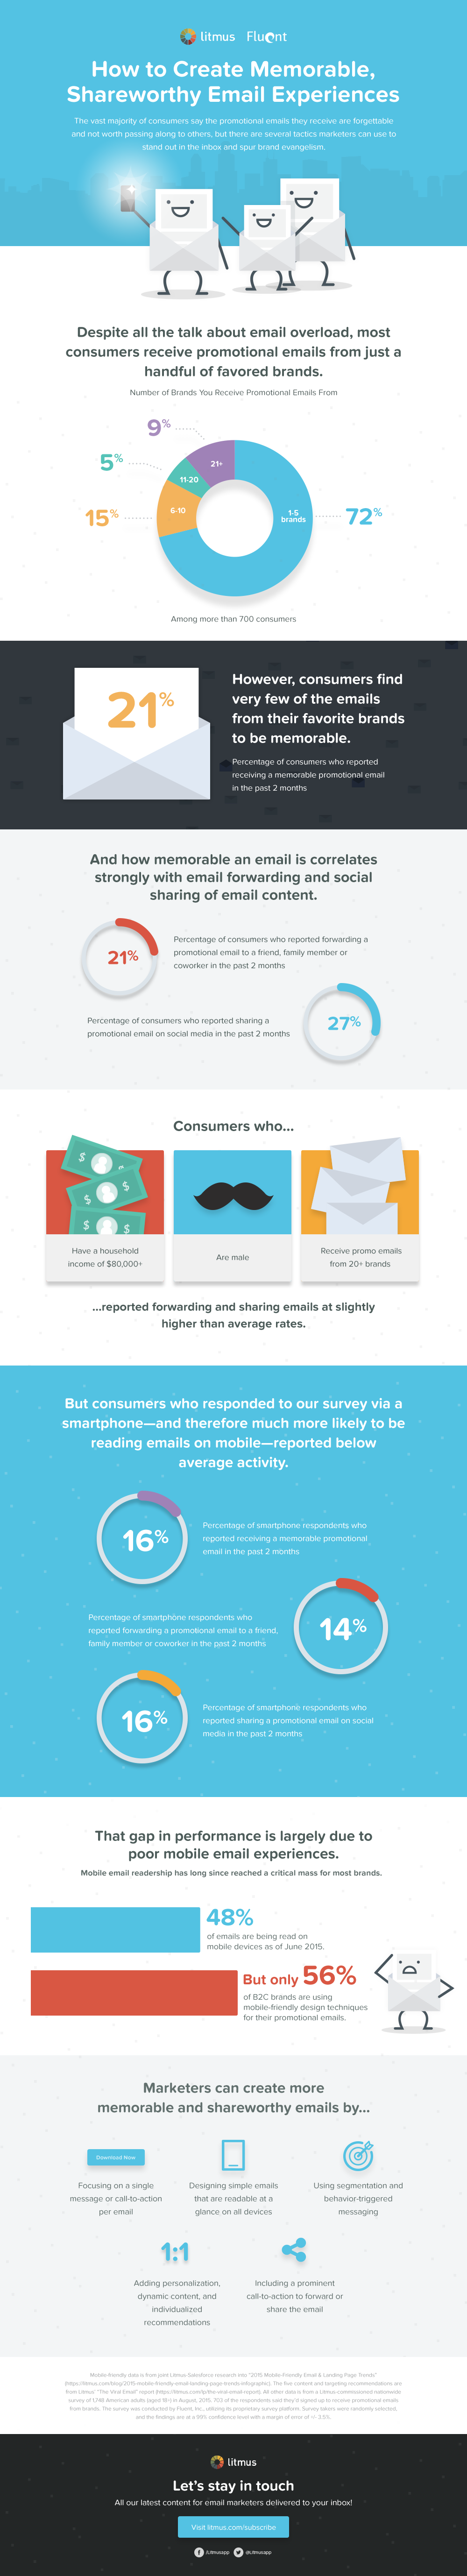 How-to-Create-Memorable,-Shareworthy-Email-Experiences